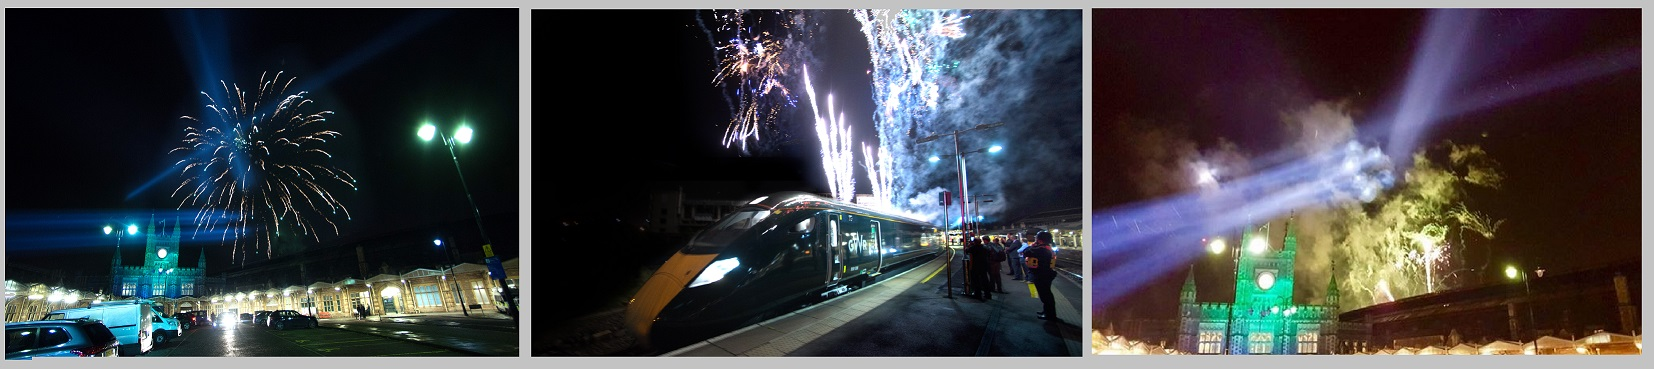 GWR train launch event, Bristol Temple Meads